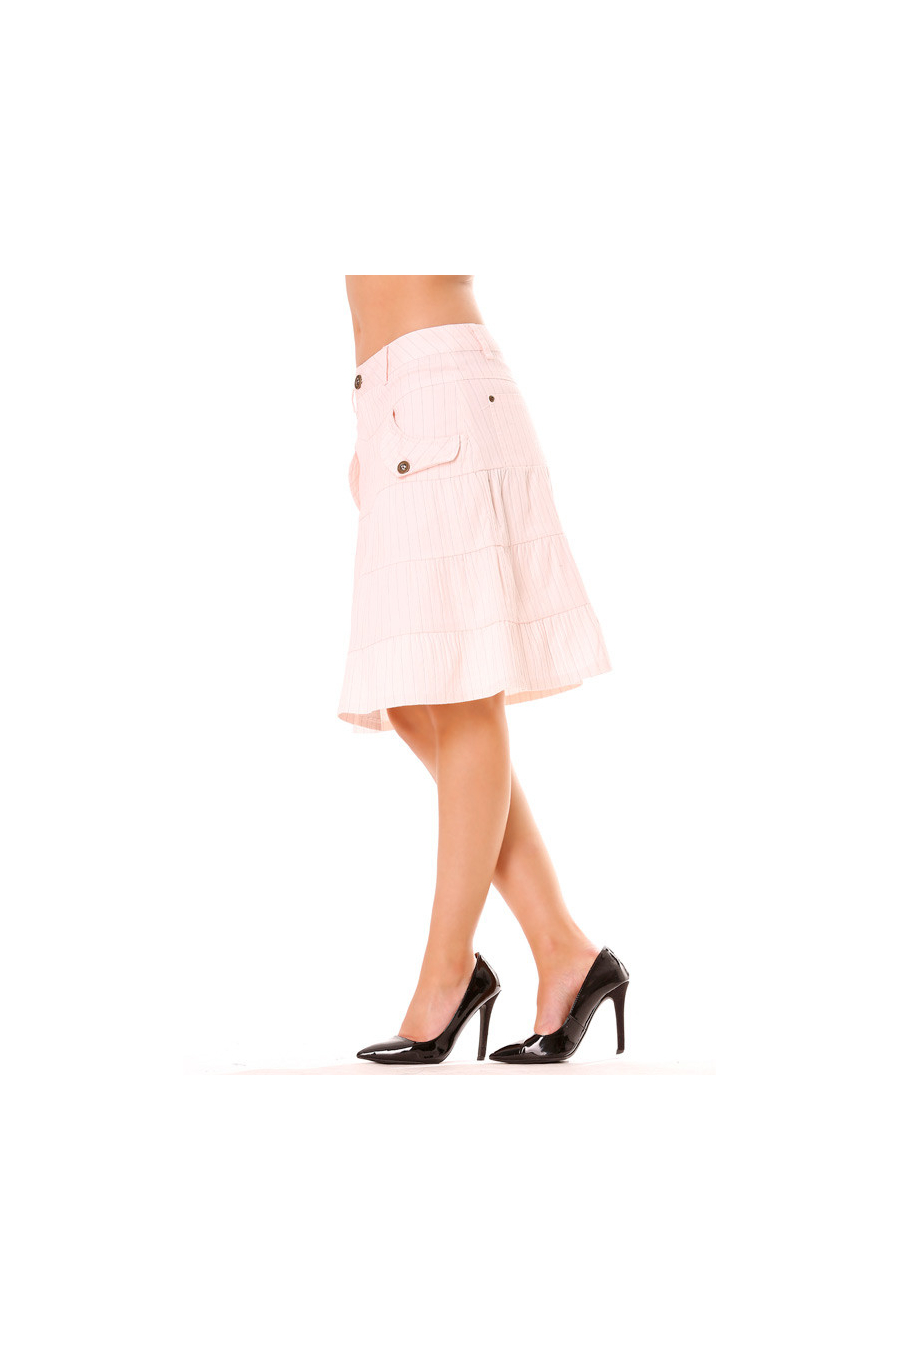 White striped mid-knee flared skirt with pockets. Women's clothing